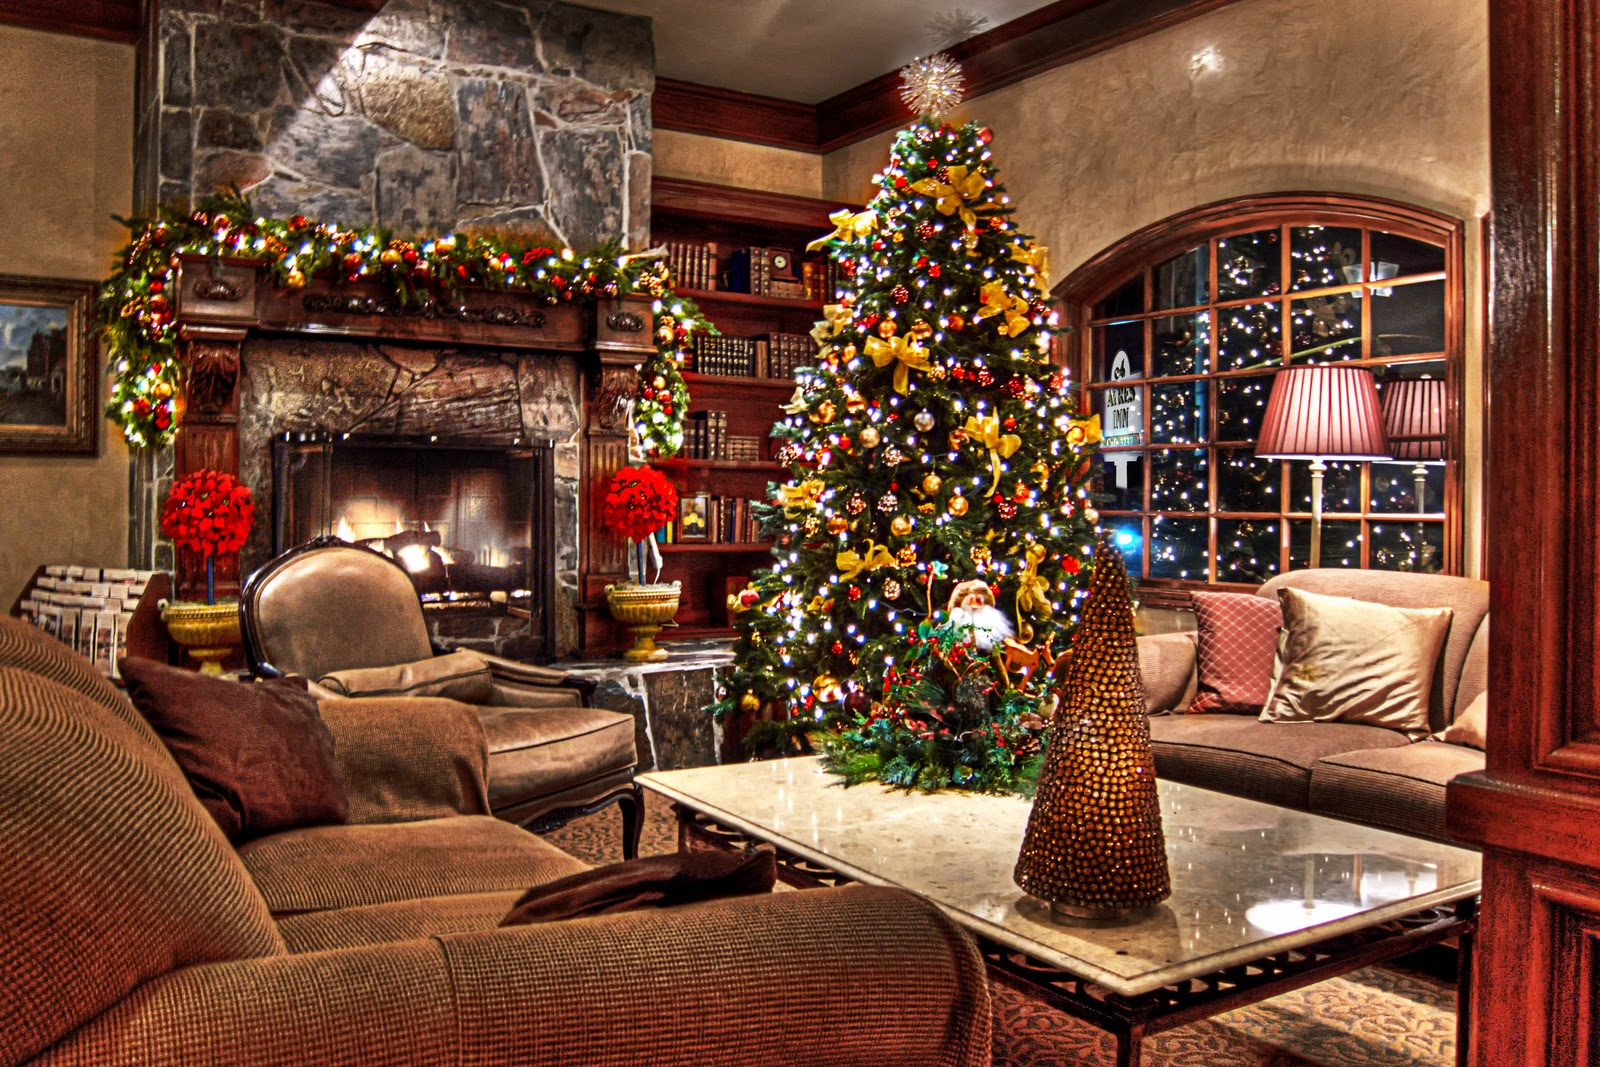 Christmas Decorations In Hotel Lobby : Southern california hotel ayres